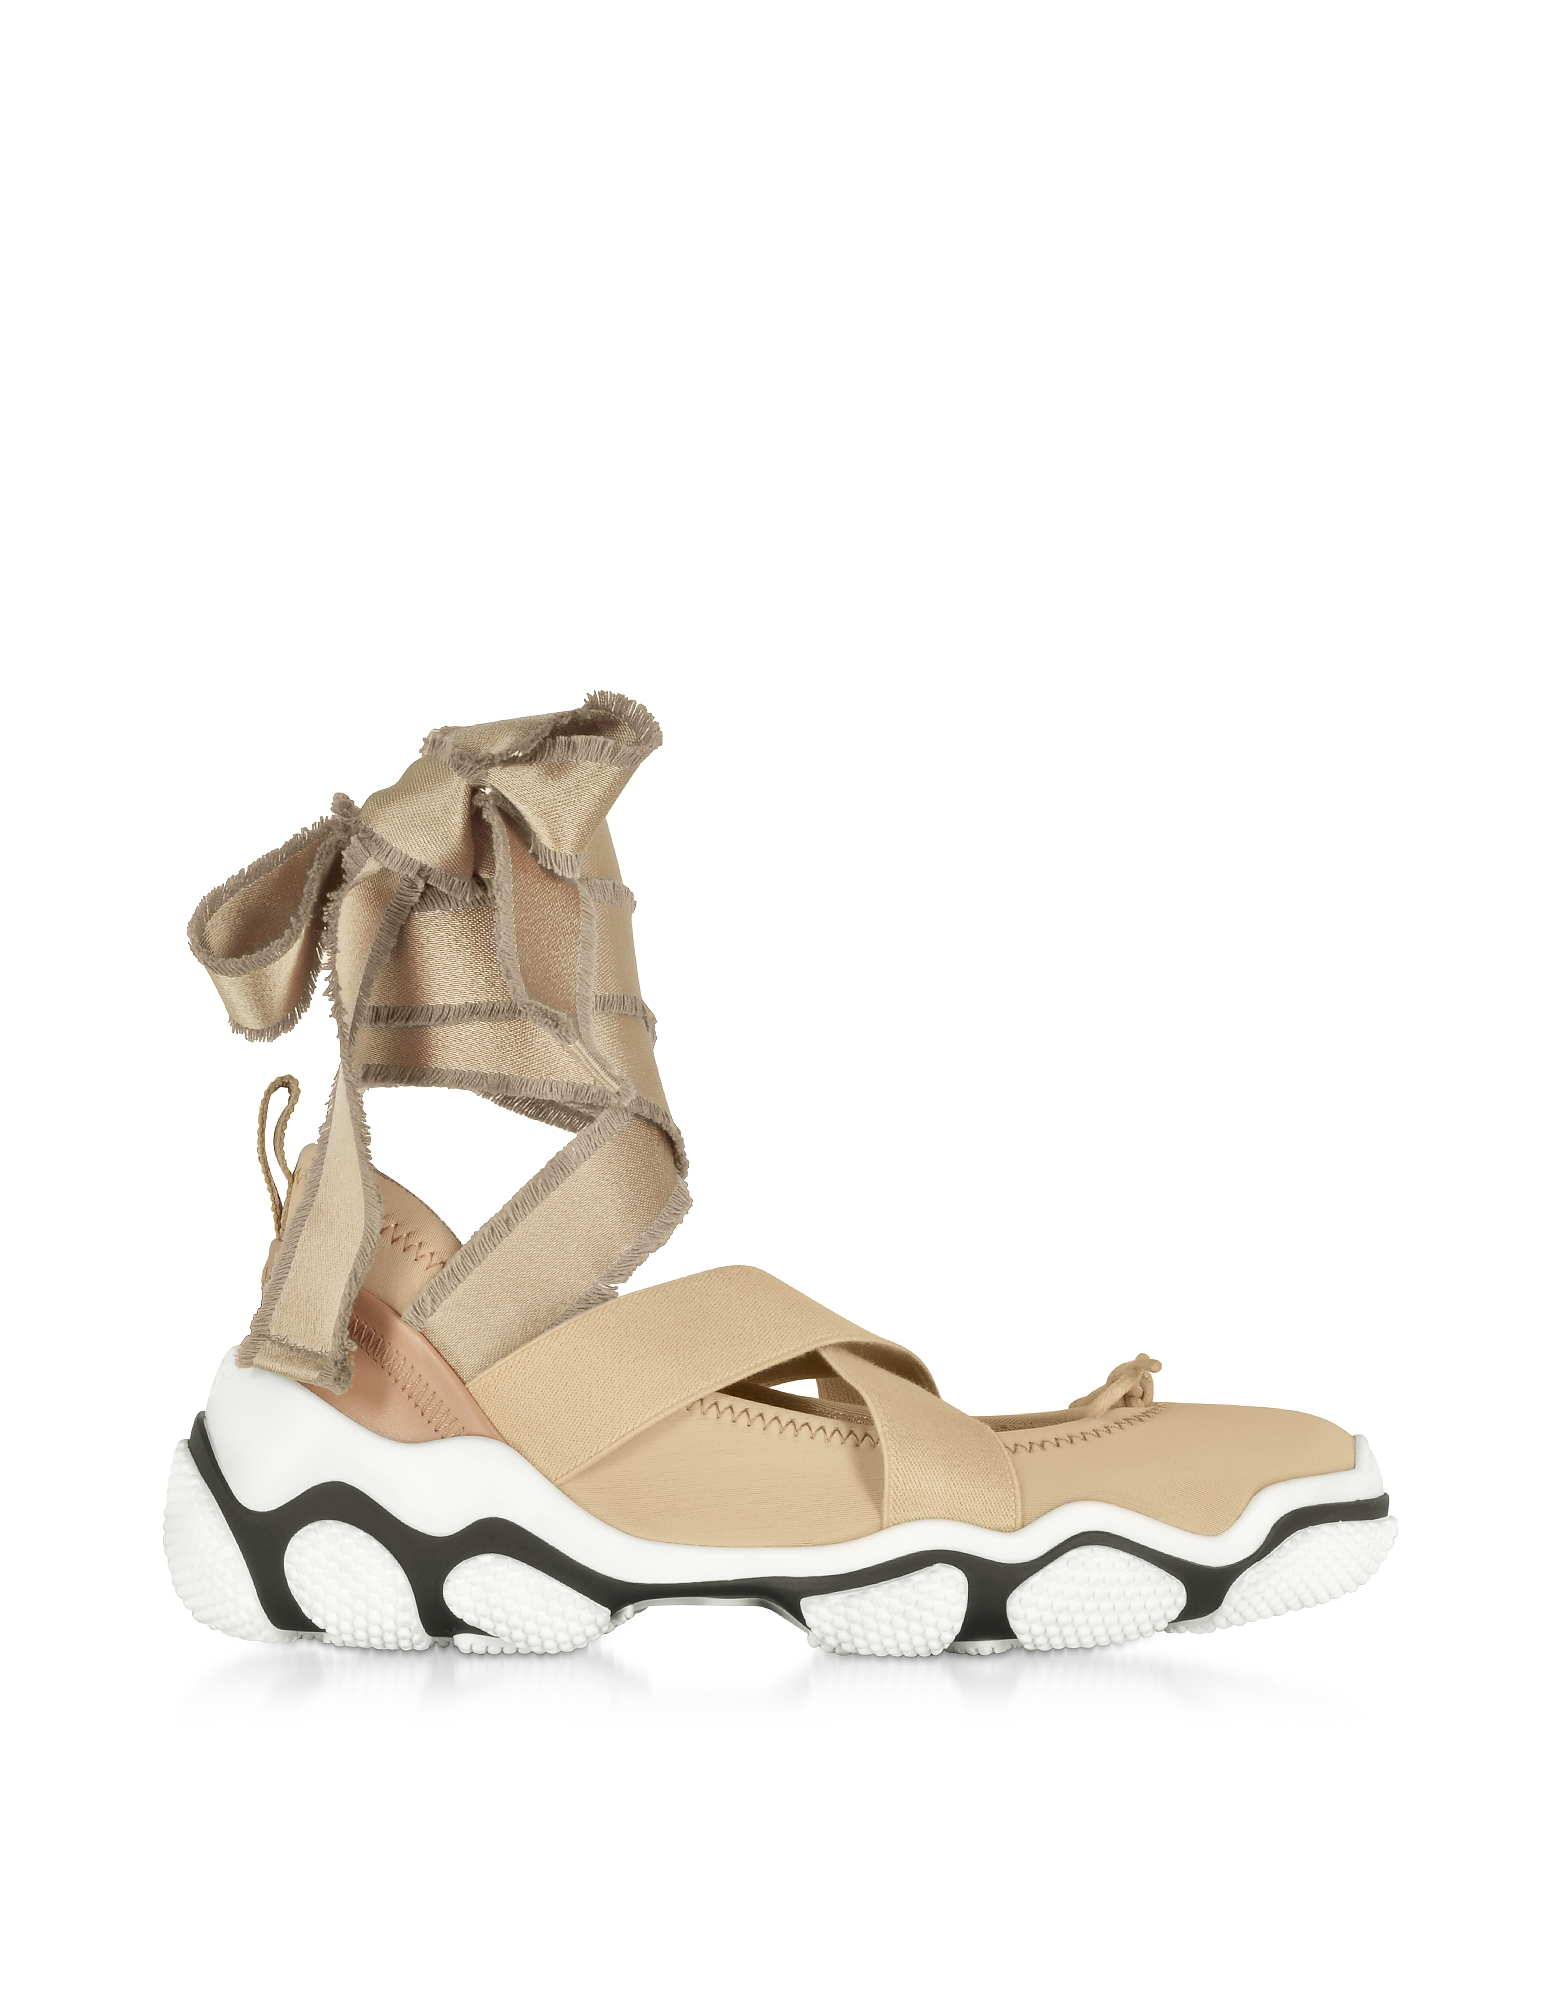 RED Valentino Designer Shoes, Nude Criss Cross Sneakers